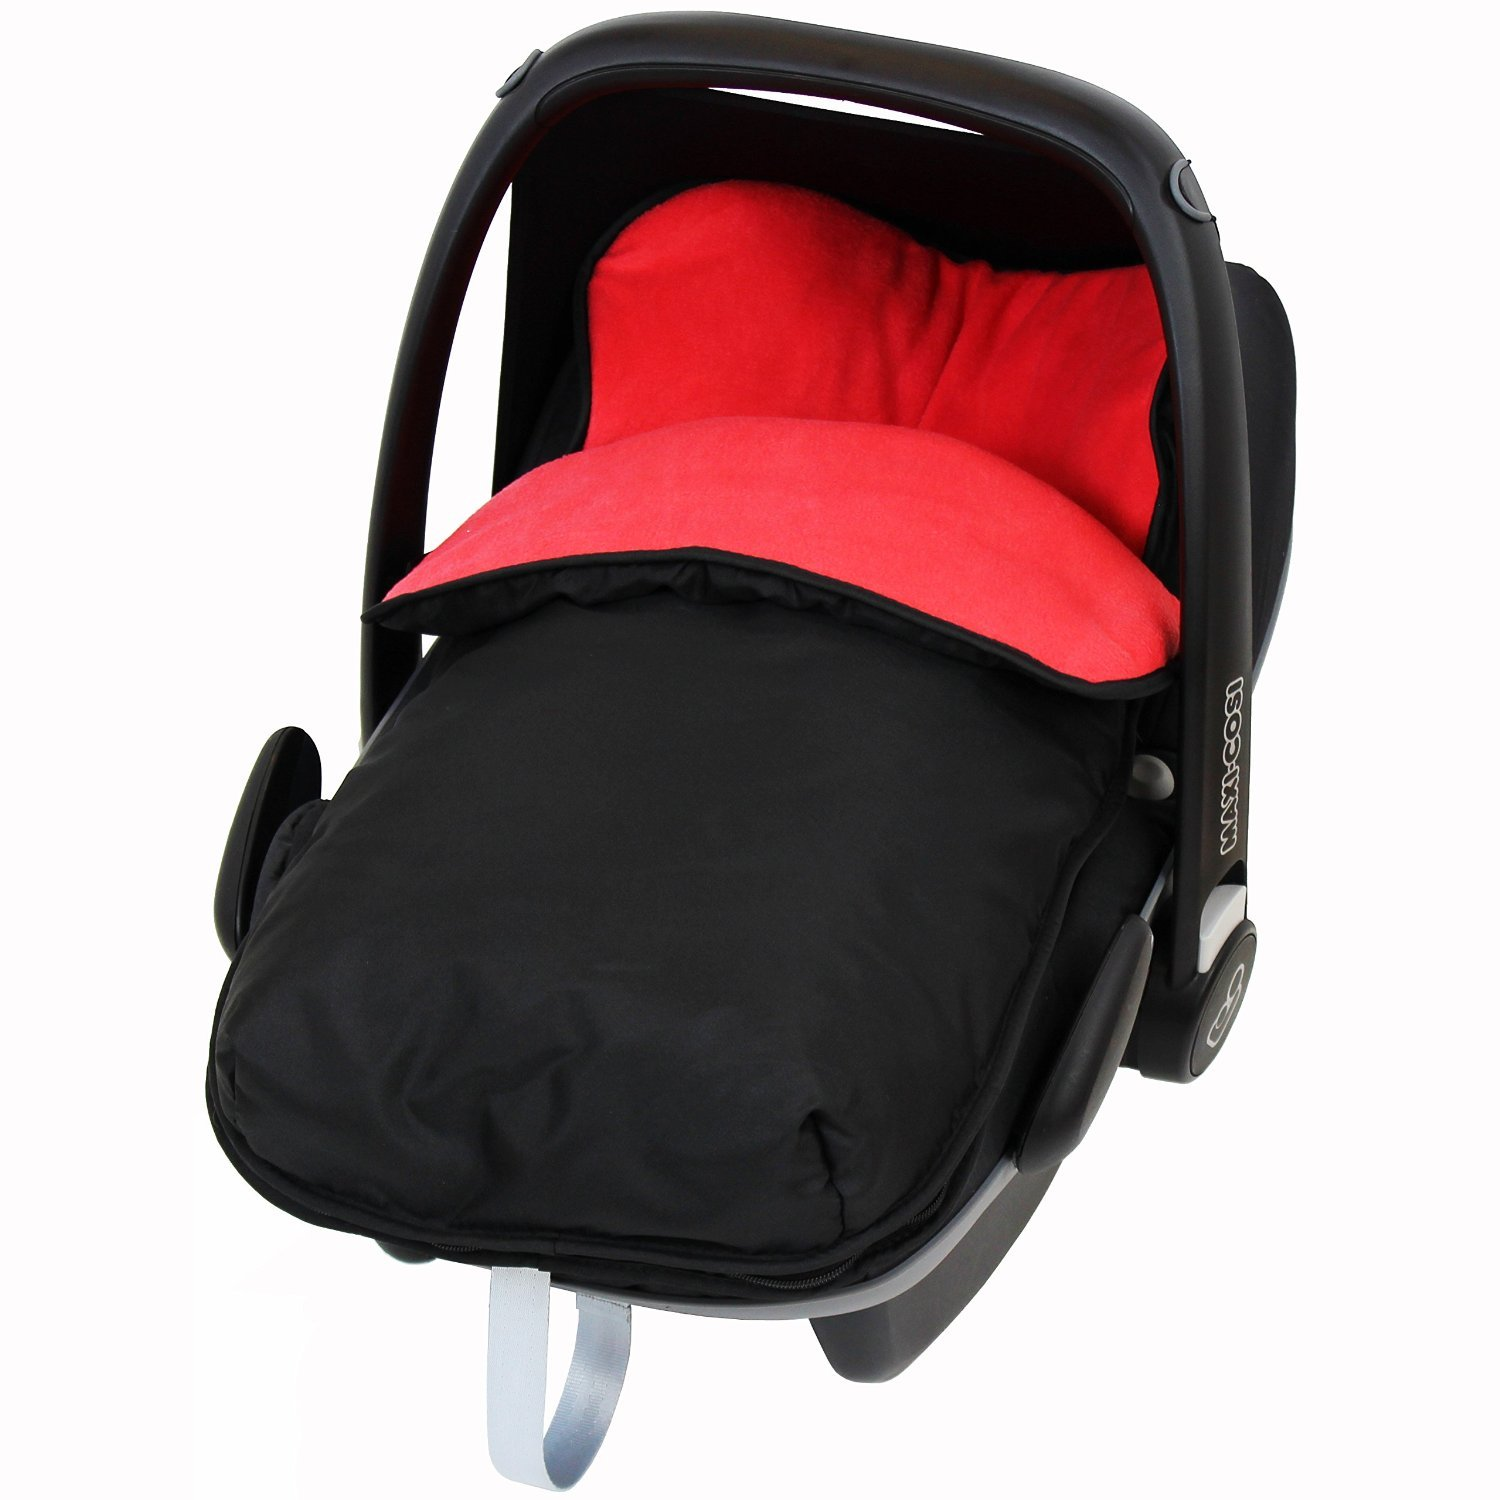 Universal Car Seat Footmuff to Fit All Car Seats - Red (Black/Red) iSafe iSBgtCrsFmRED